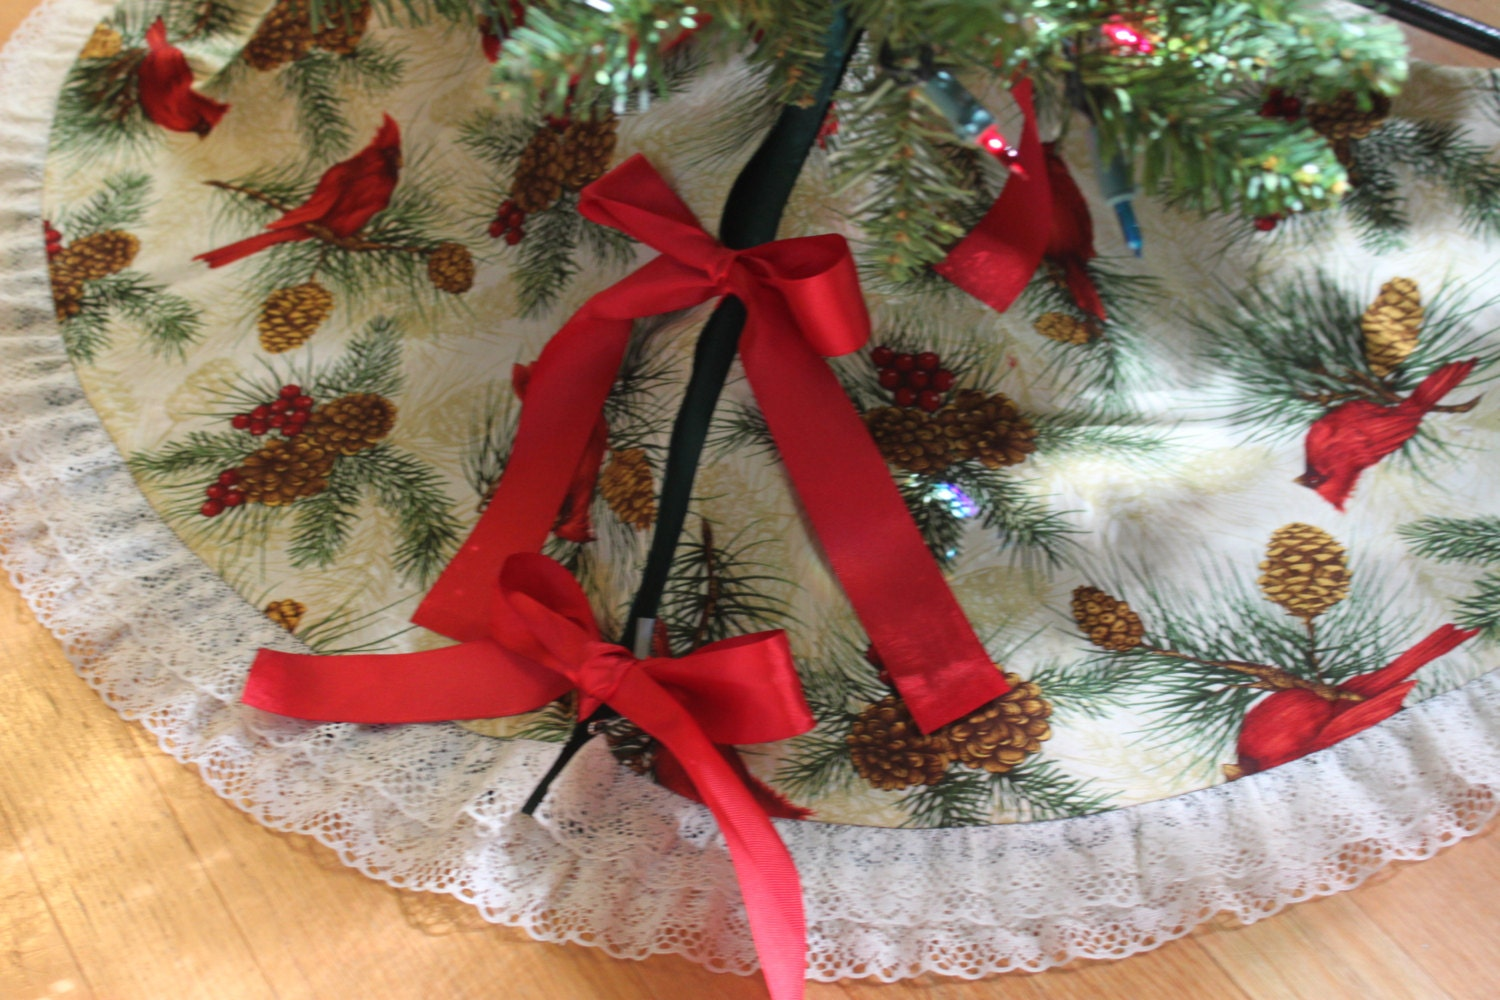 Christmas tree skirt handmade in cardinals pine with